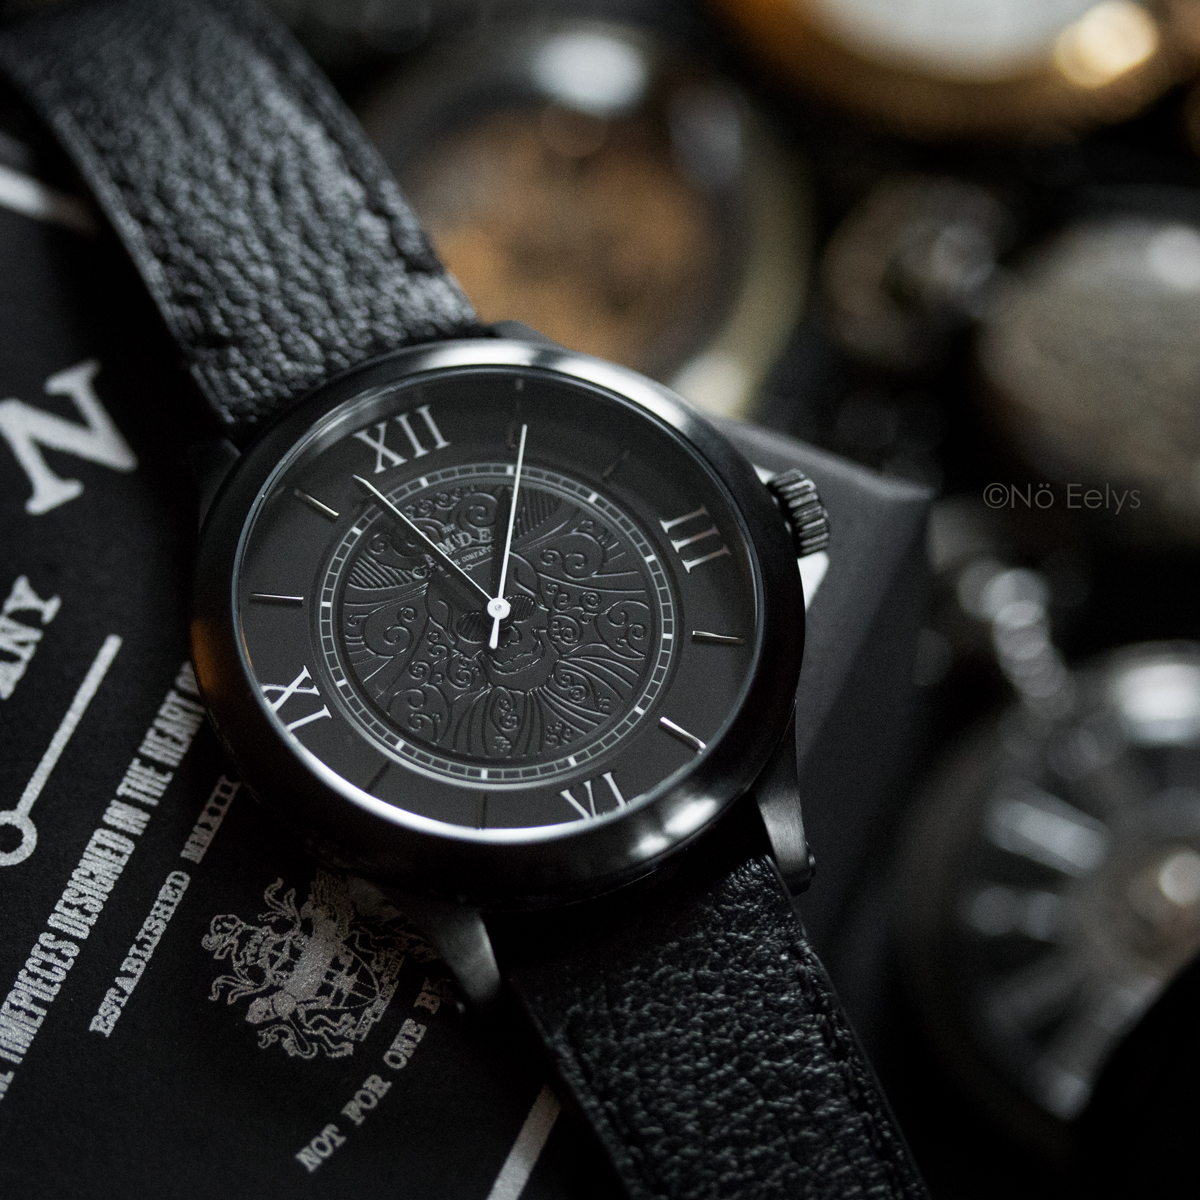 GIVEAWAY Montre gothique victorienne Memento Mori The Camden Watch company